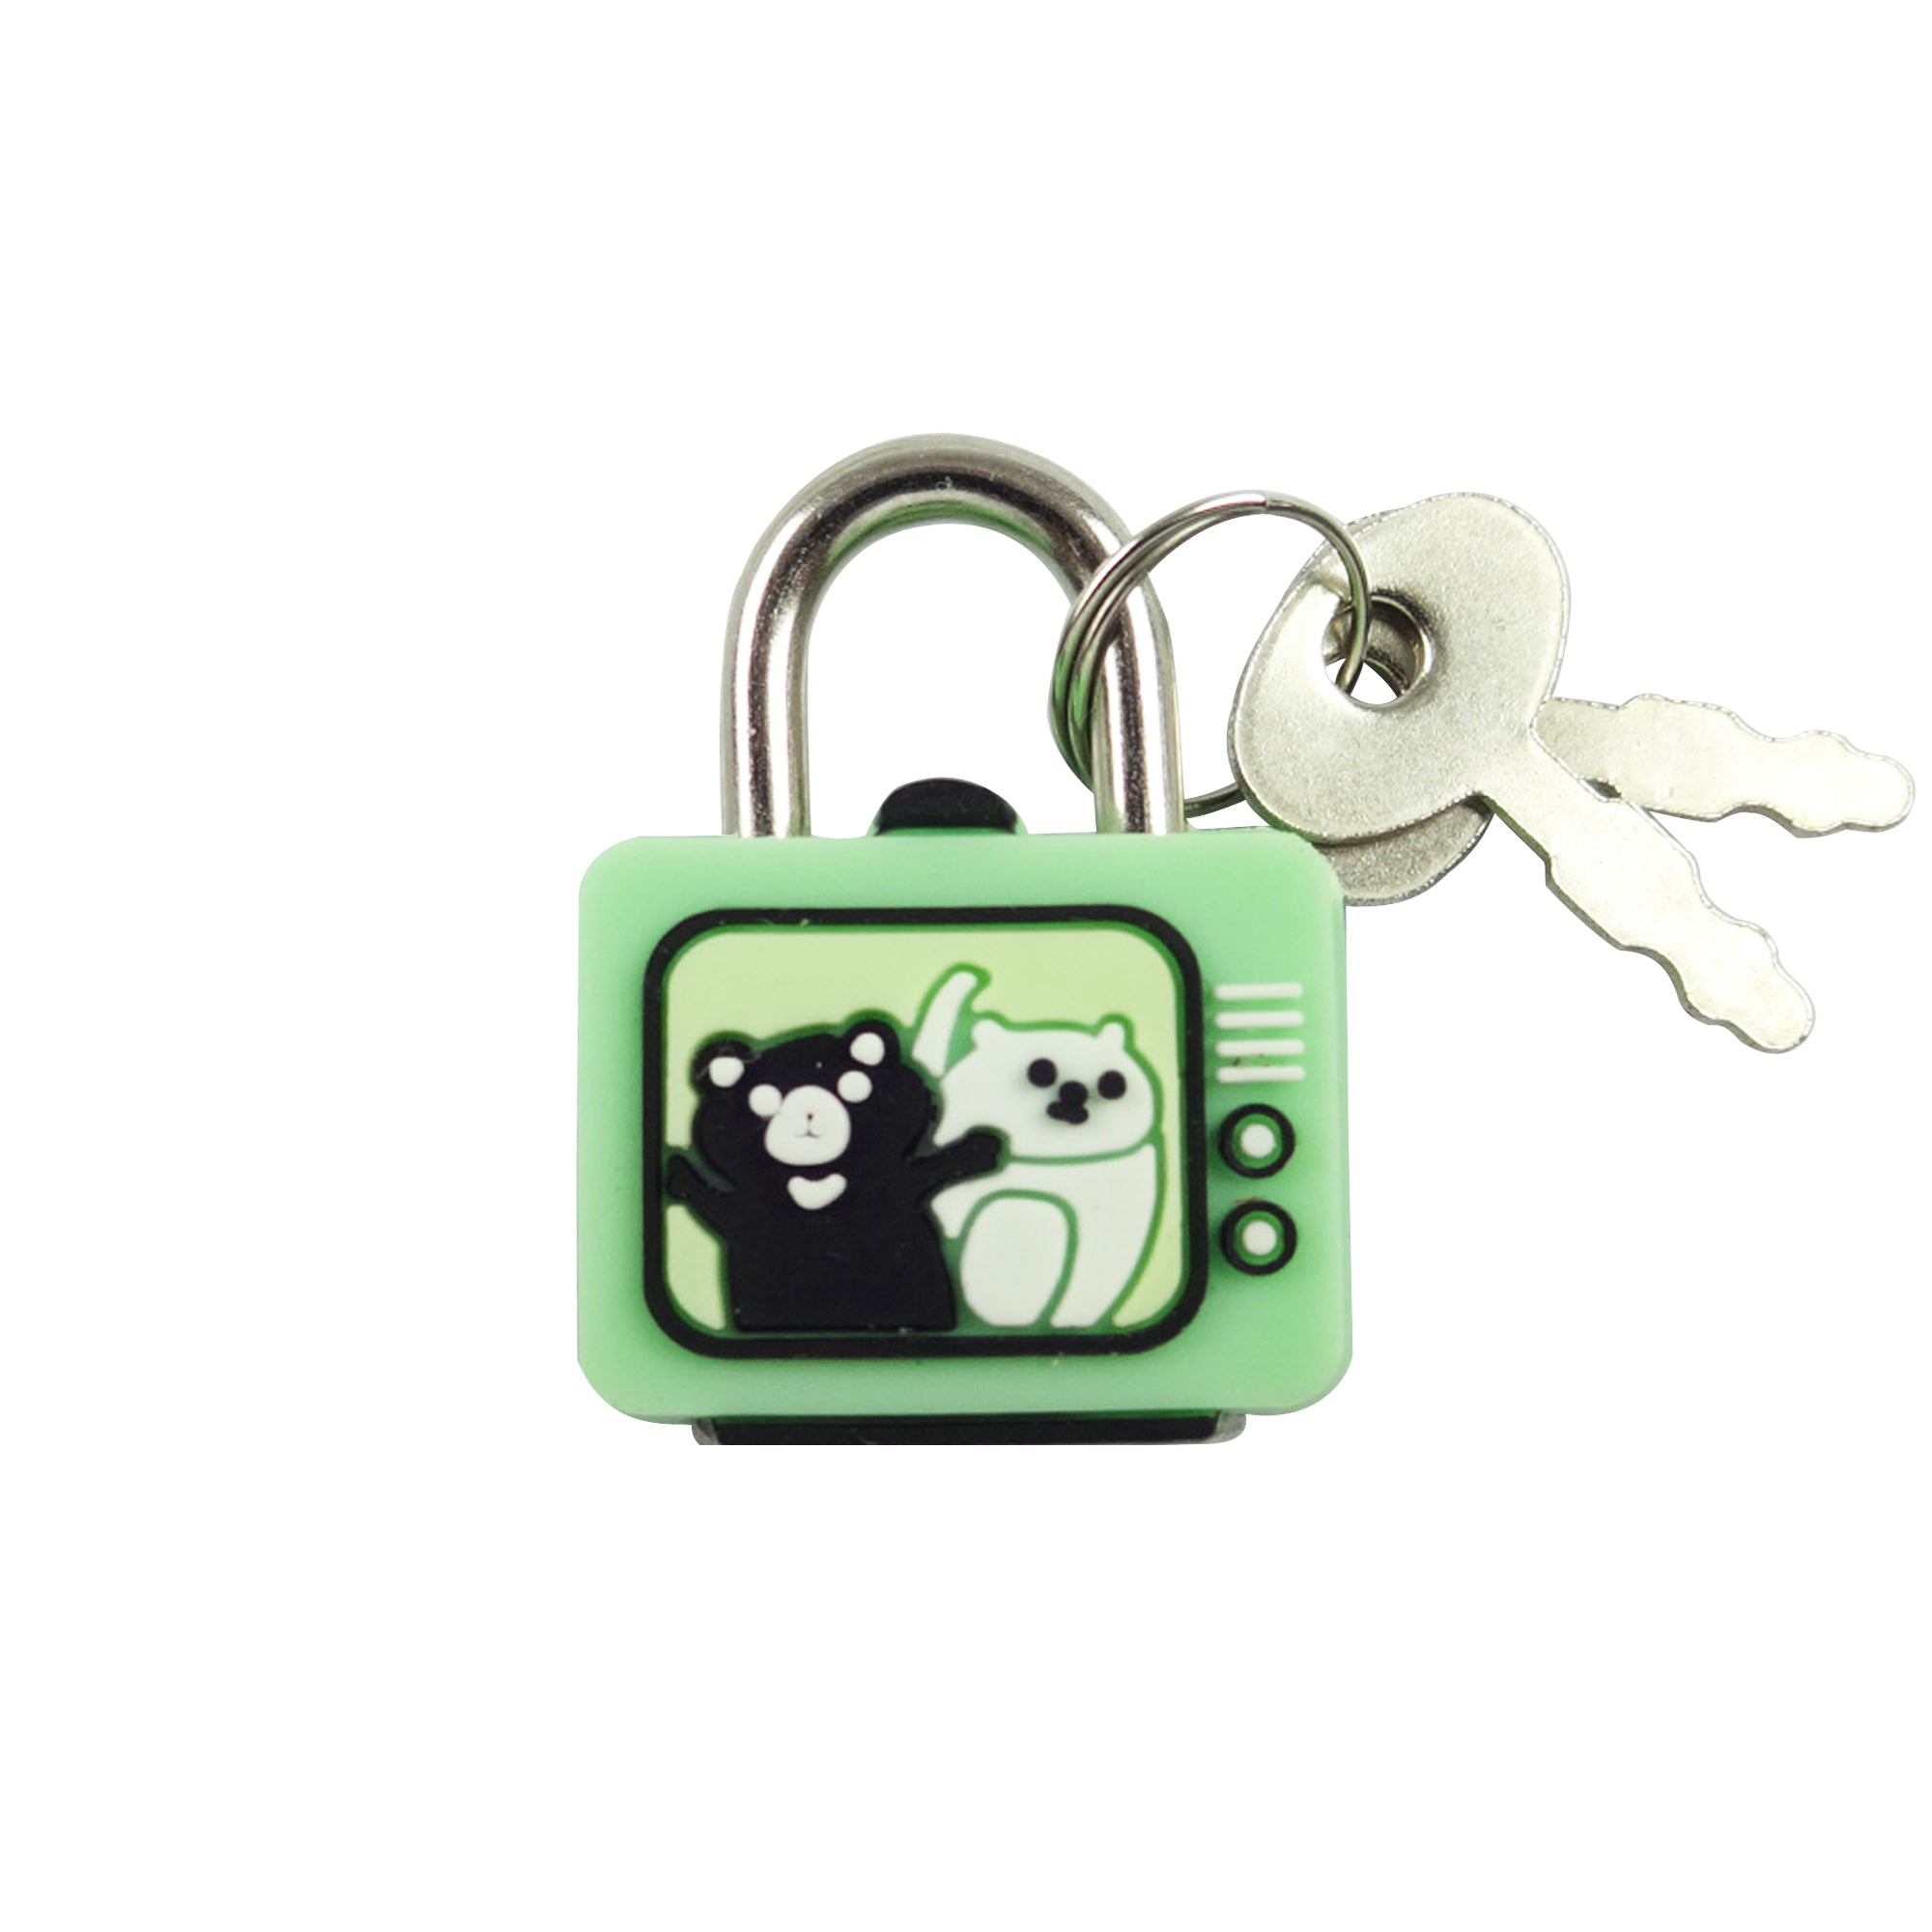 TV Lock - Green